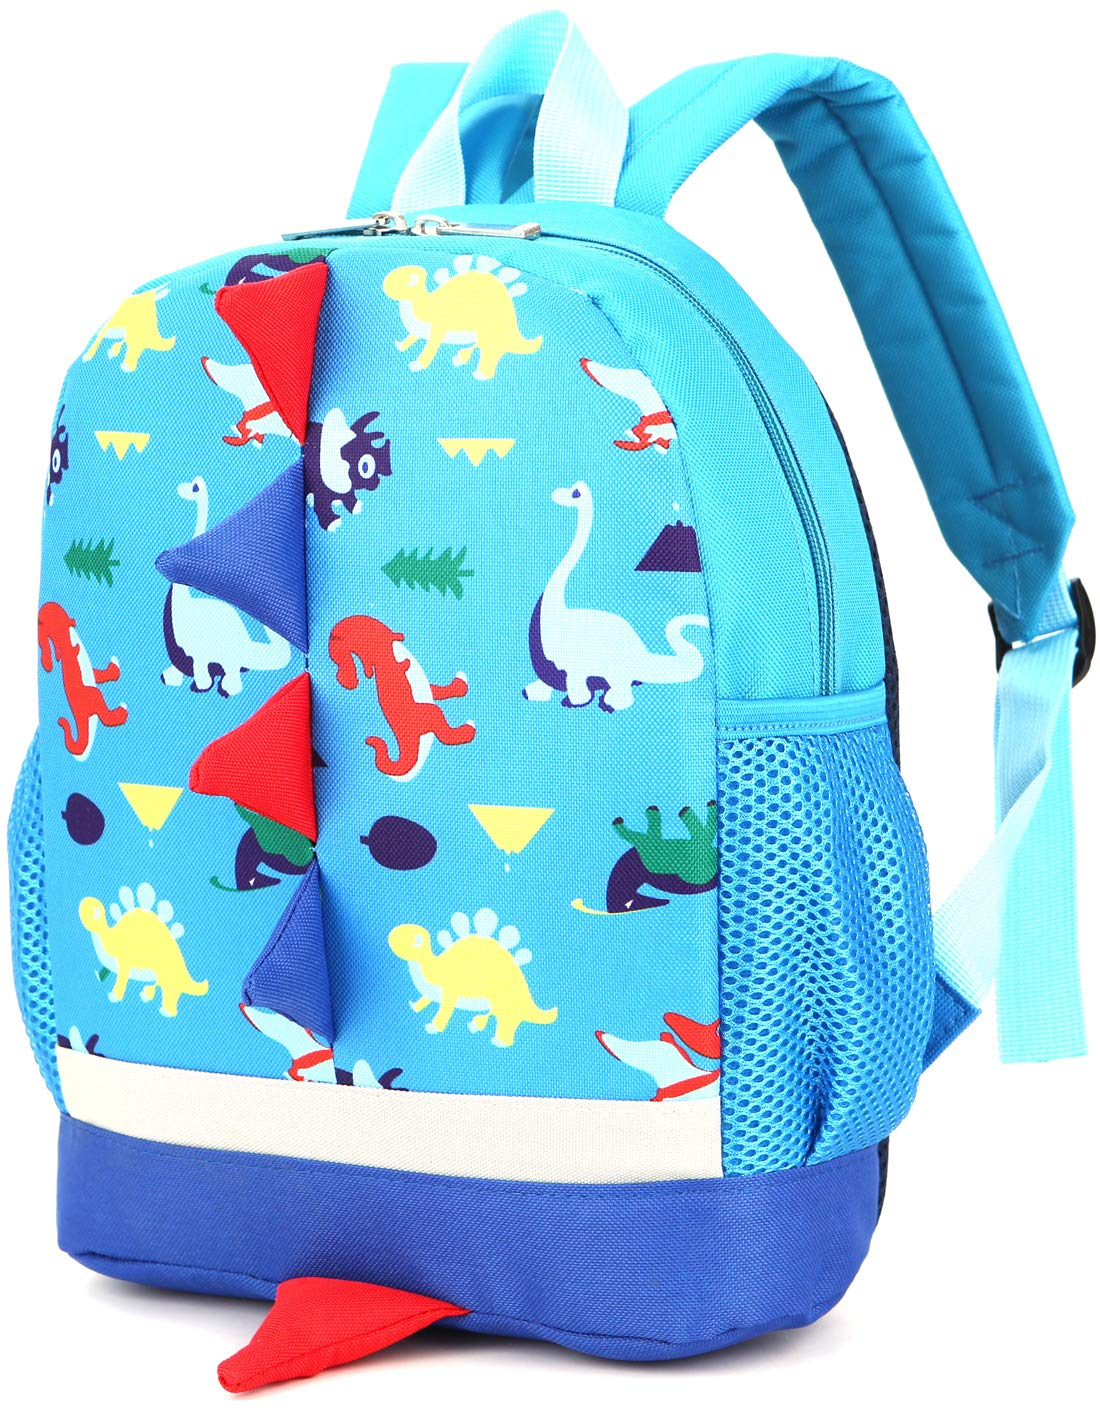 dce1e456f7d Toddler Kid Child Backpack with Safety Harness Leash Animal Dragon Daycare  Bag